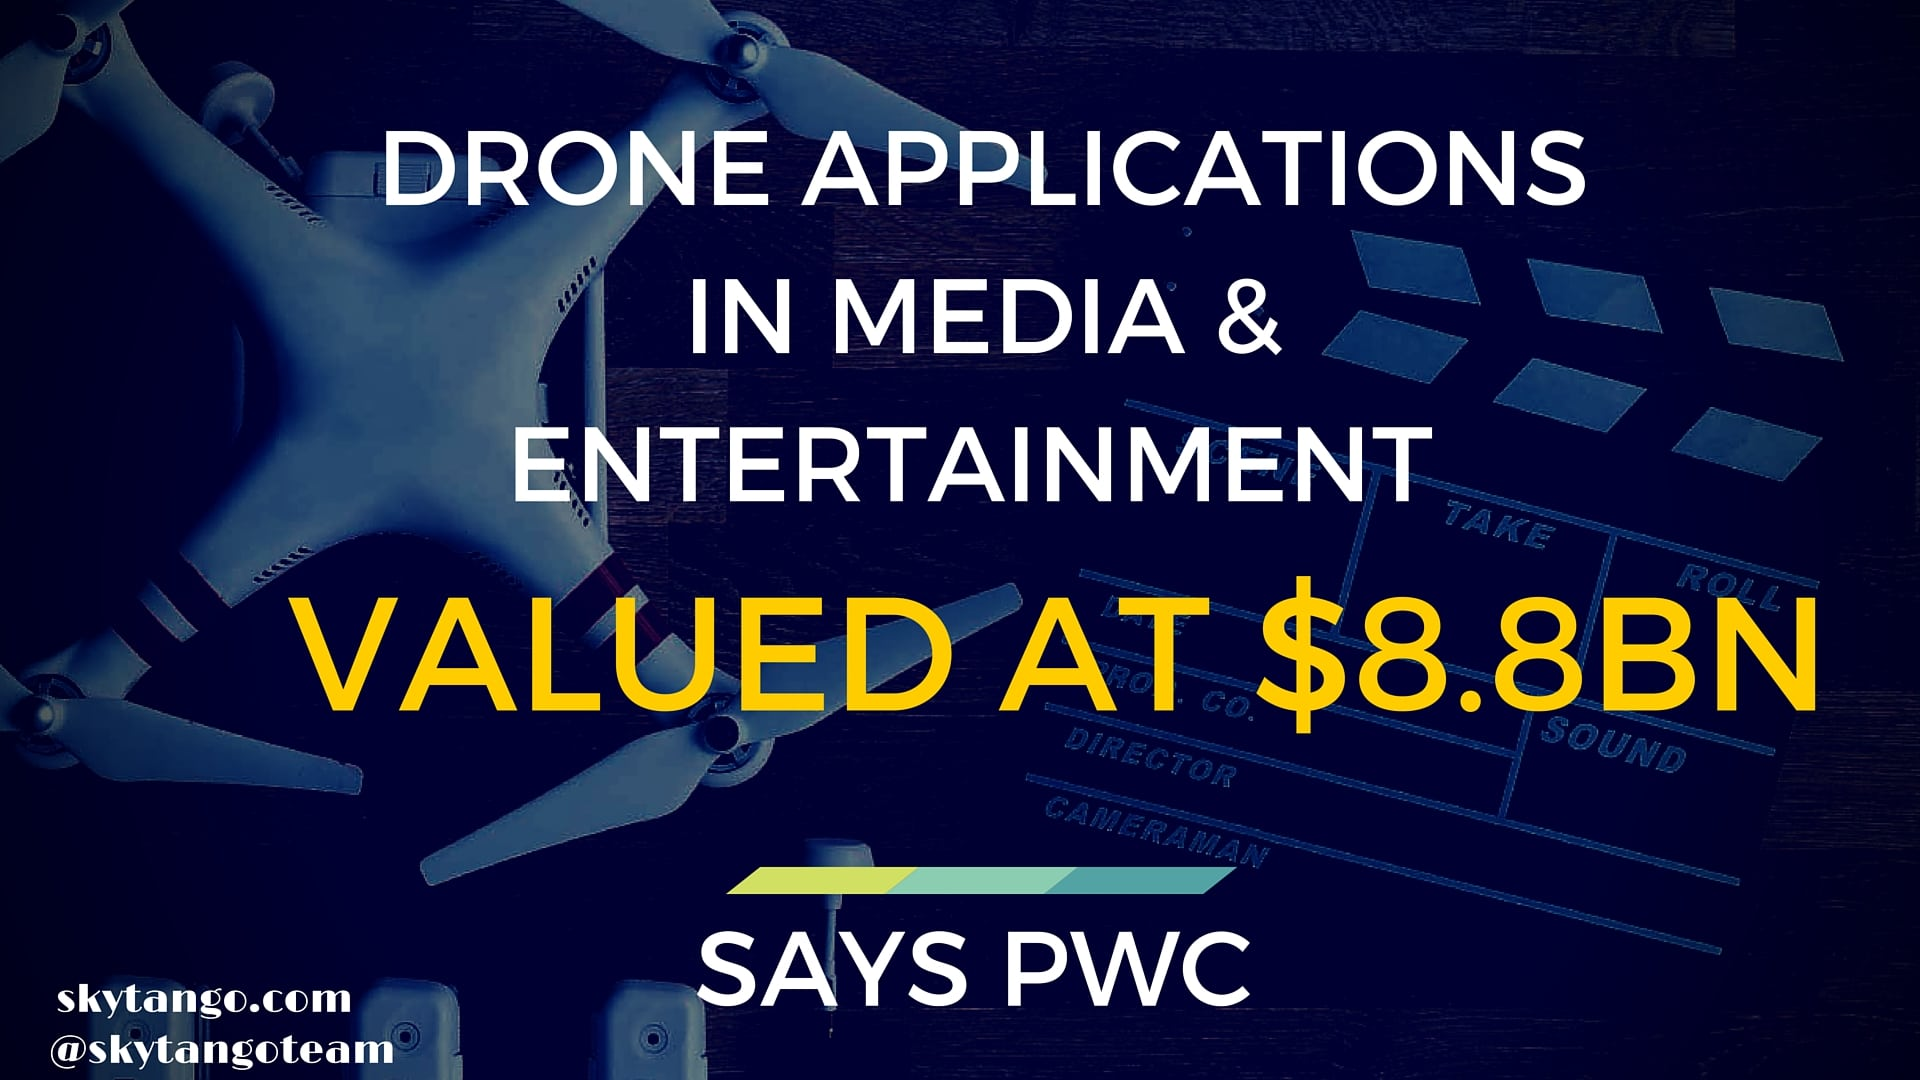 Market For Drone Applications In Media & Entertainment Industry Valued At $8.8bn, Says PwC